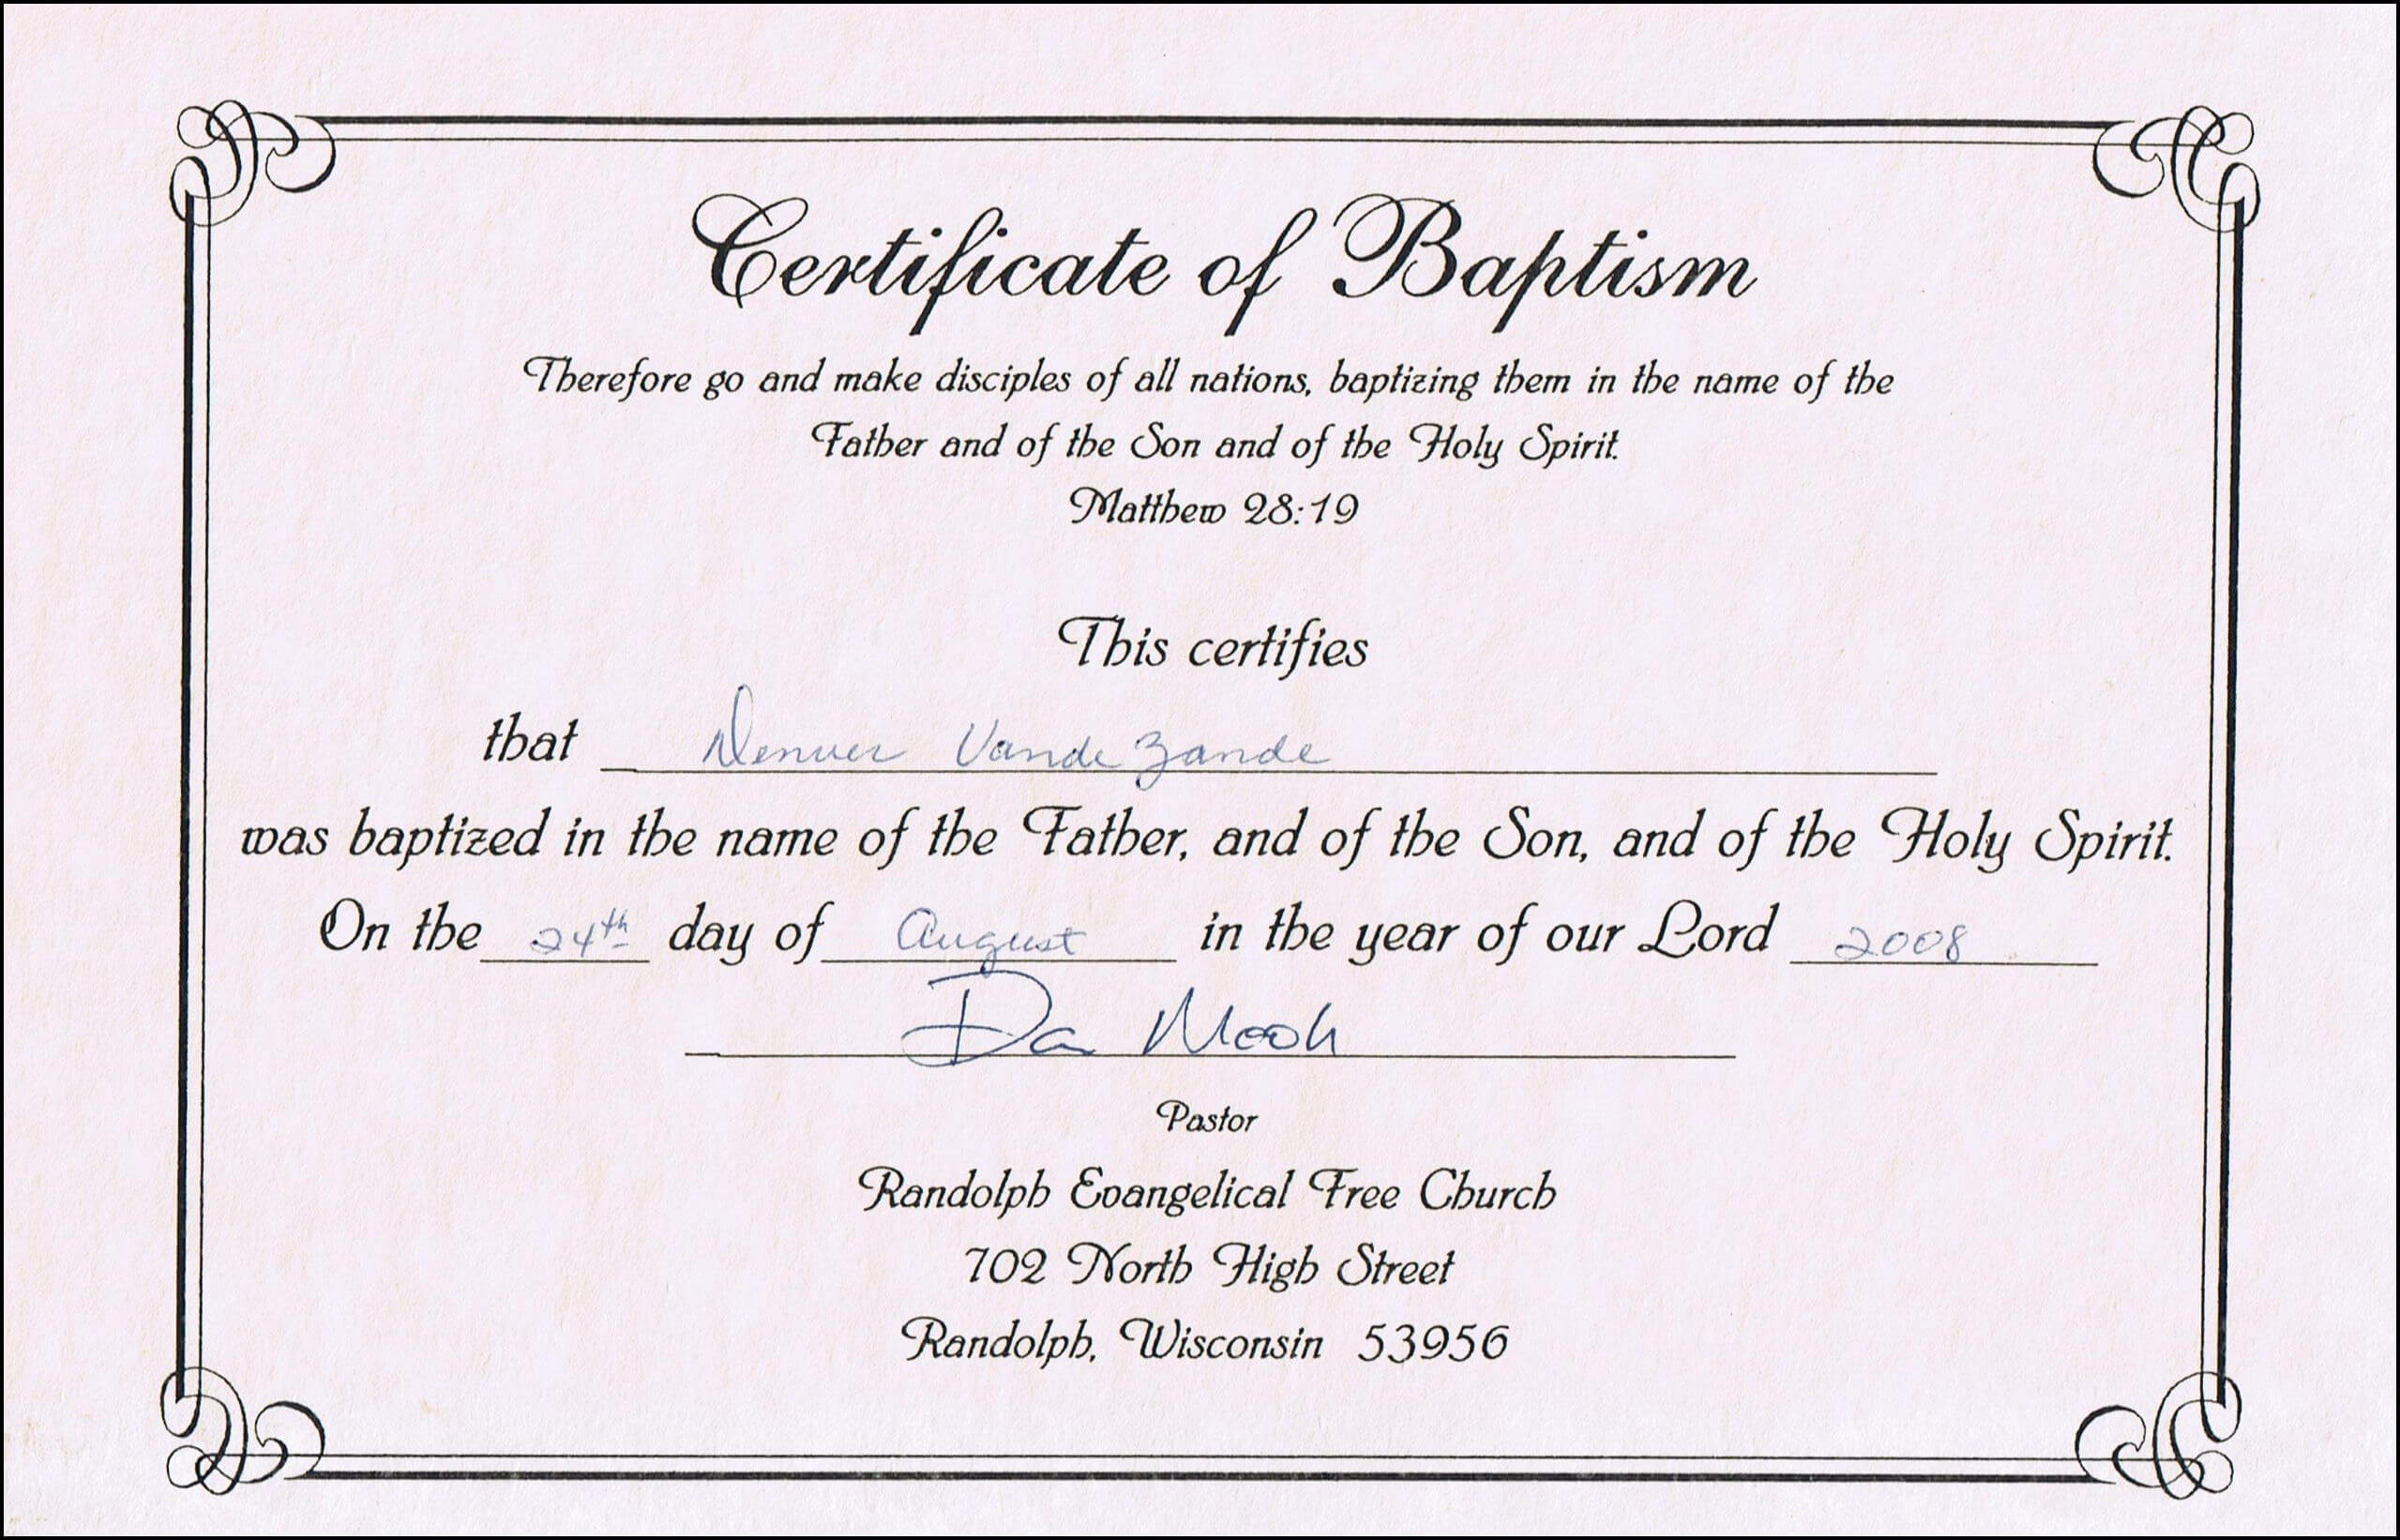 Baptism Certificate Templates For Word | Aspects Of Beauty With Regard To Baptism Certificate Template Download